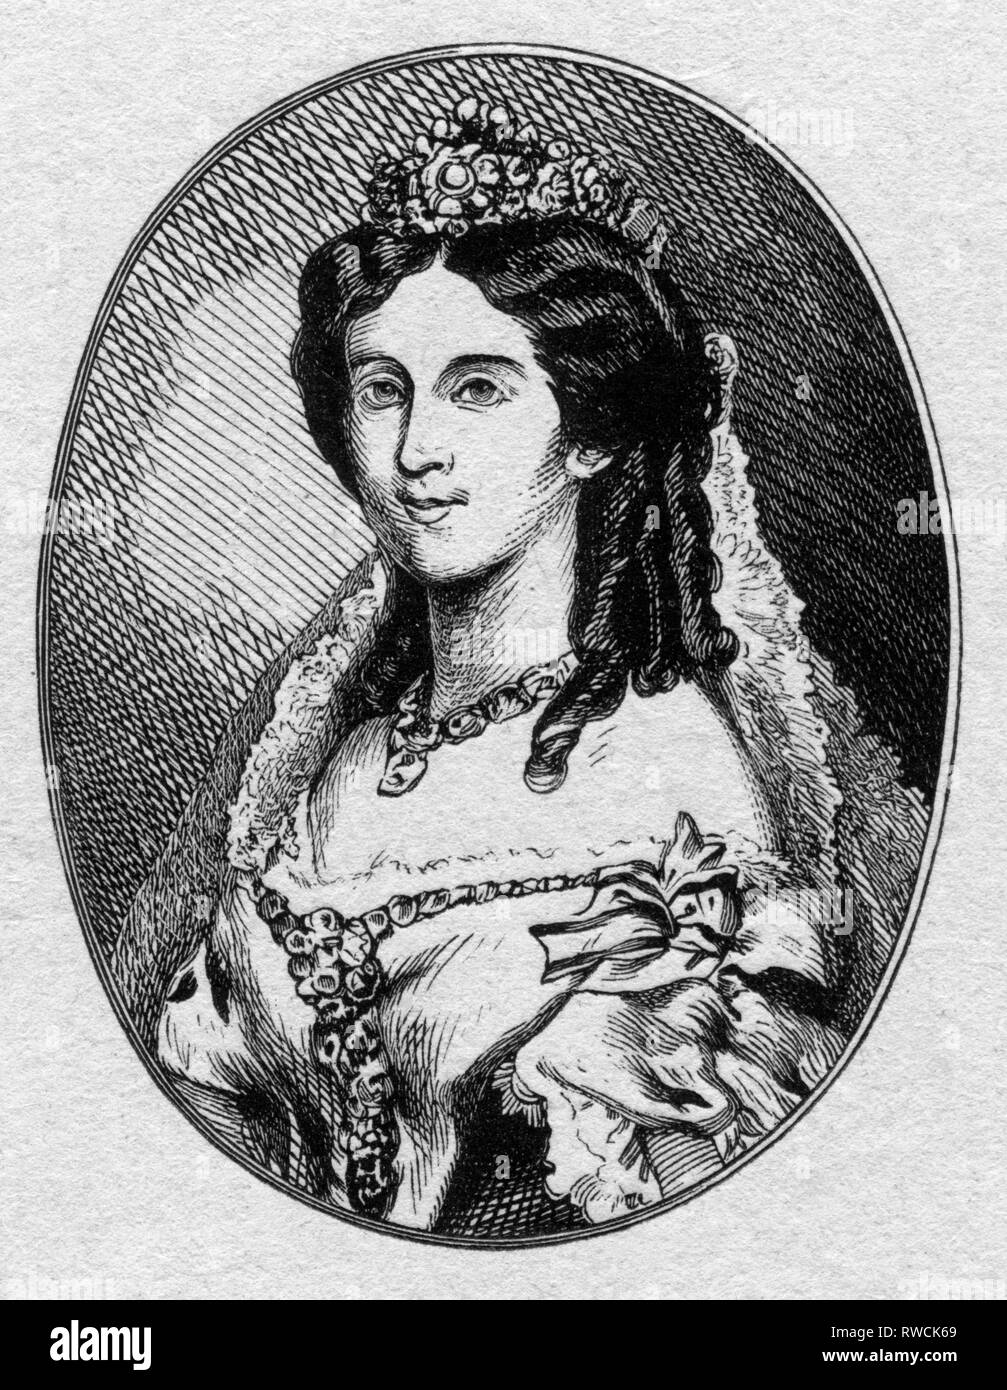 Germany, Augusta, Empress of Germany, Queen of Prussia, born as Augusta of Saxe-Weimar-Eisenach, steel engraving from around 1840?, from a book., Artist's Copyright has not to be cleared - Stock Image